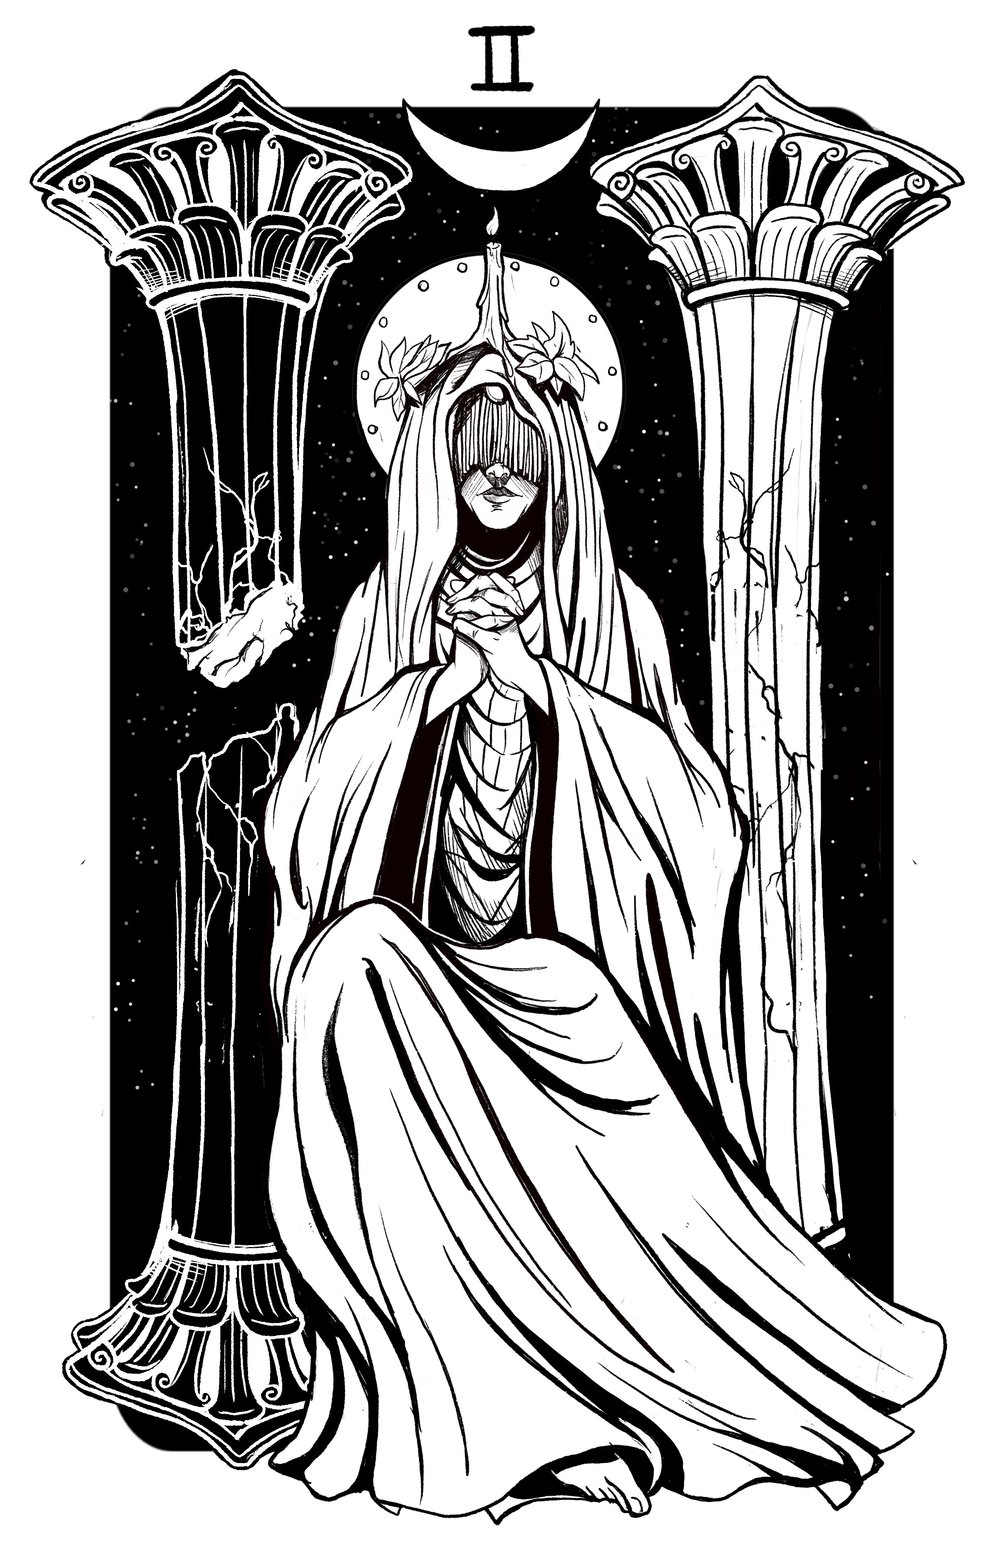 Major Arcana II: The High Priestess